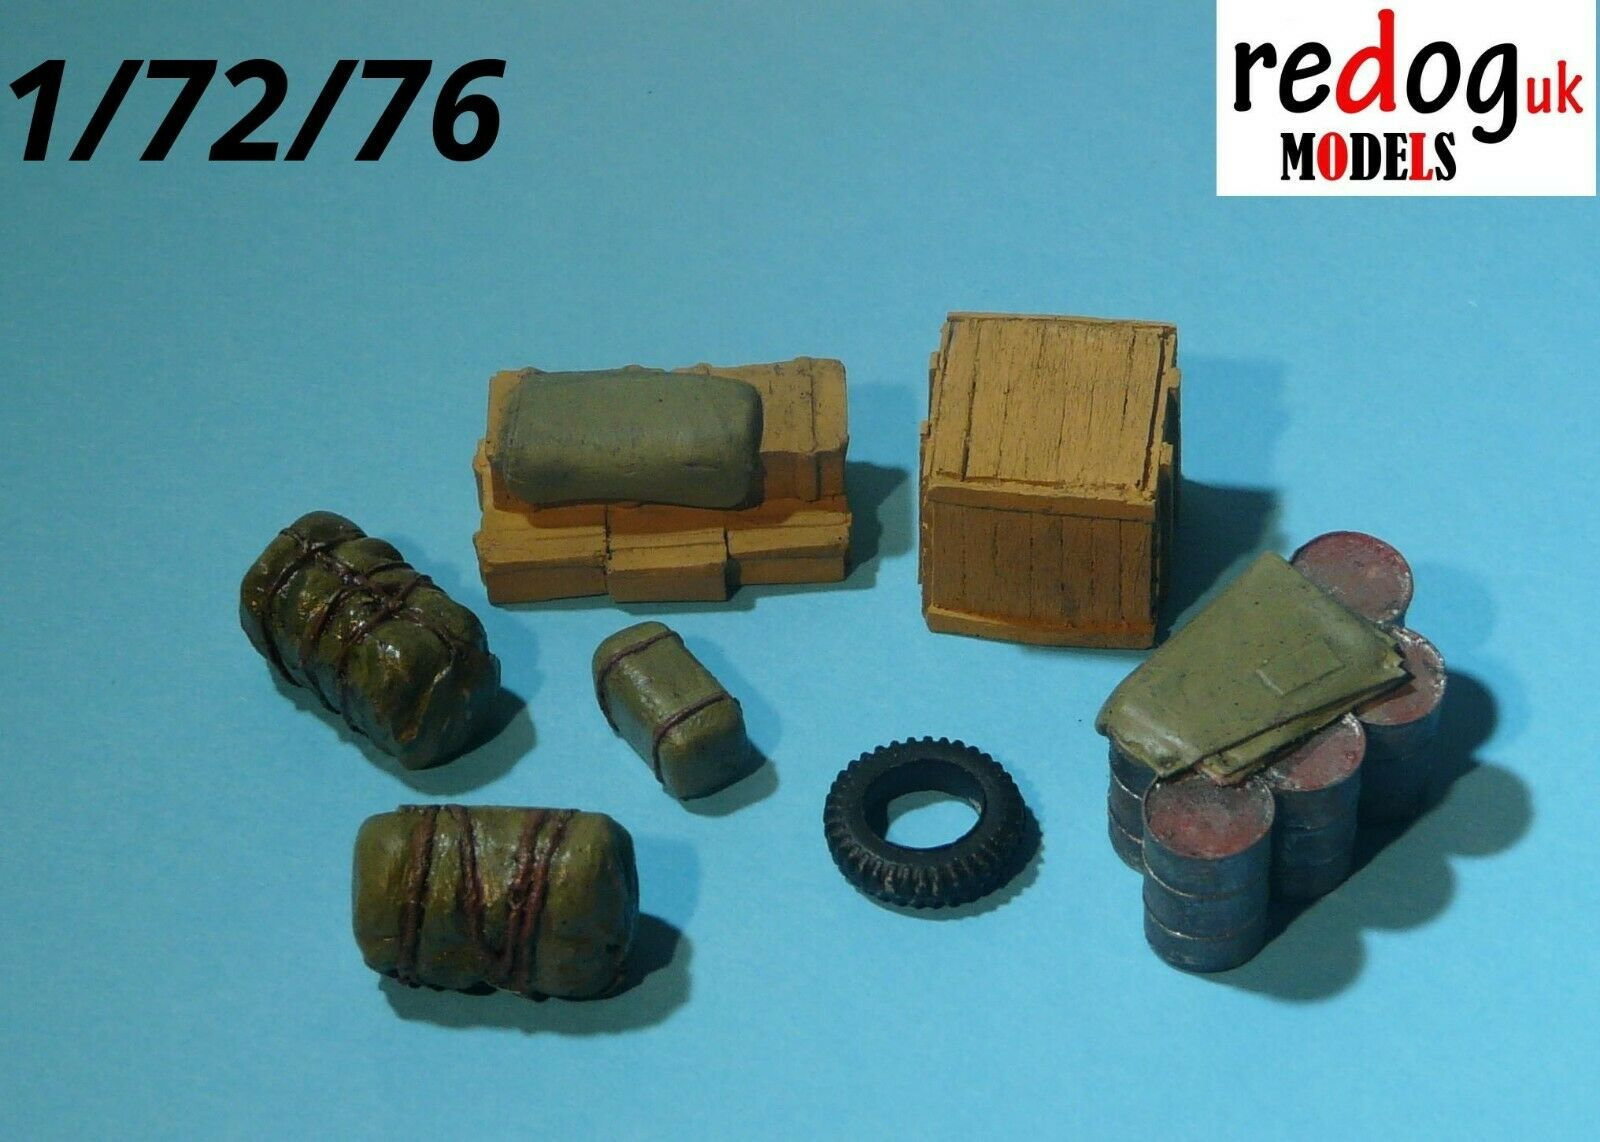 1/72 Vehicle Cargo Kit Military Scale Modelling Stowage Diorama Accessorises 4 - redoguk